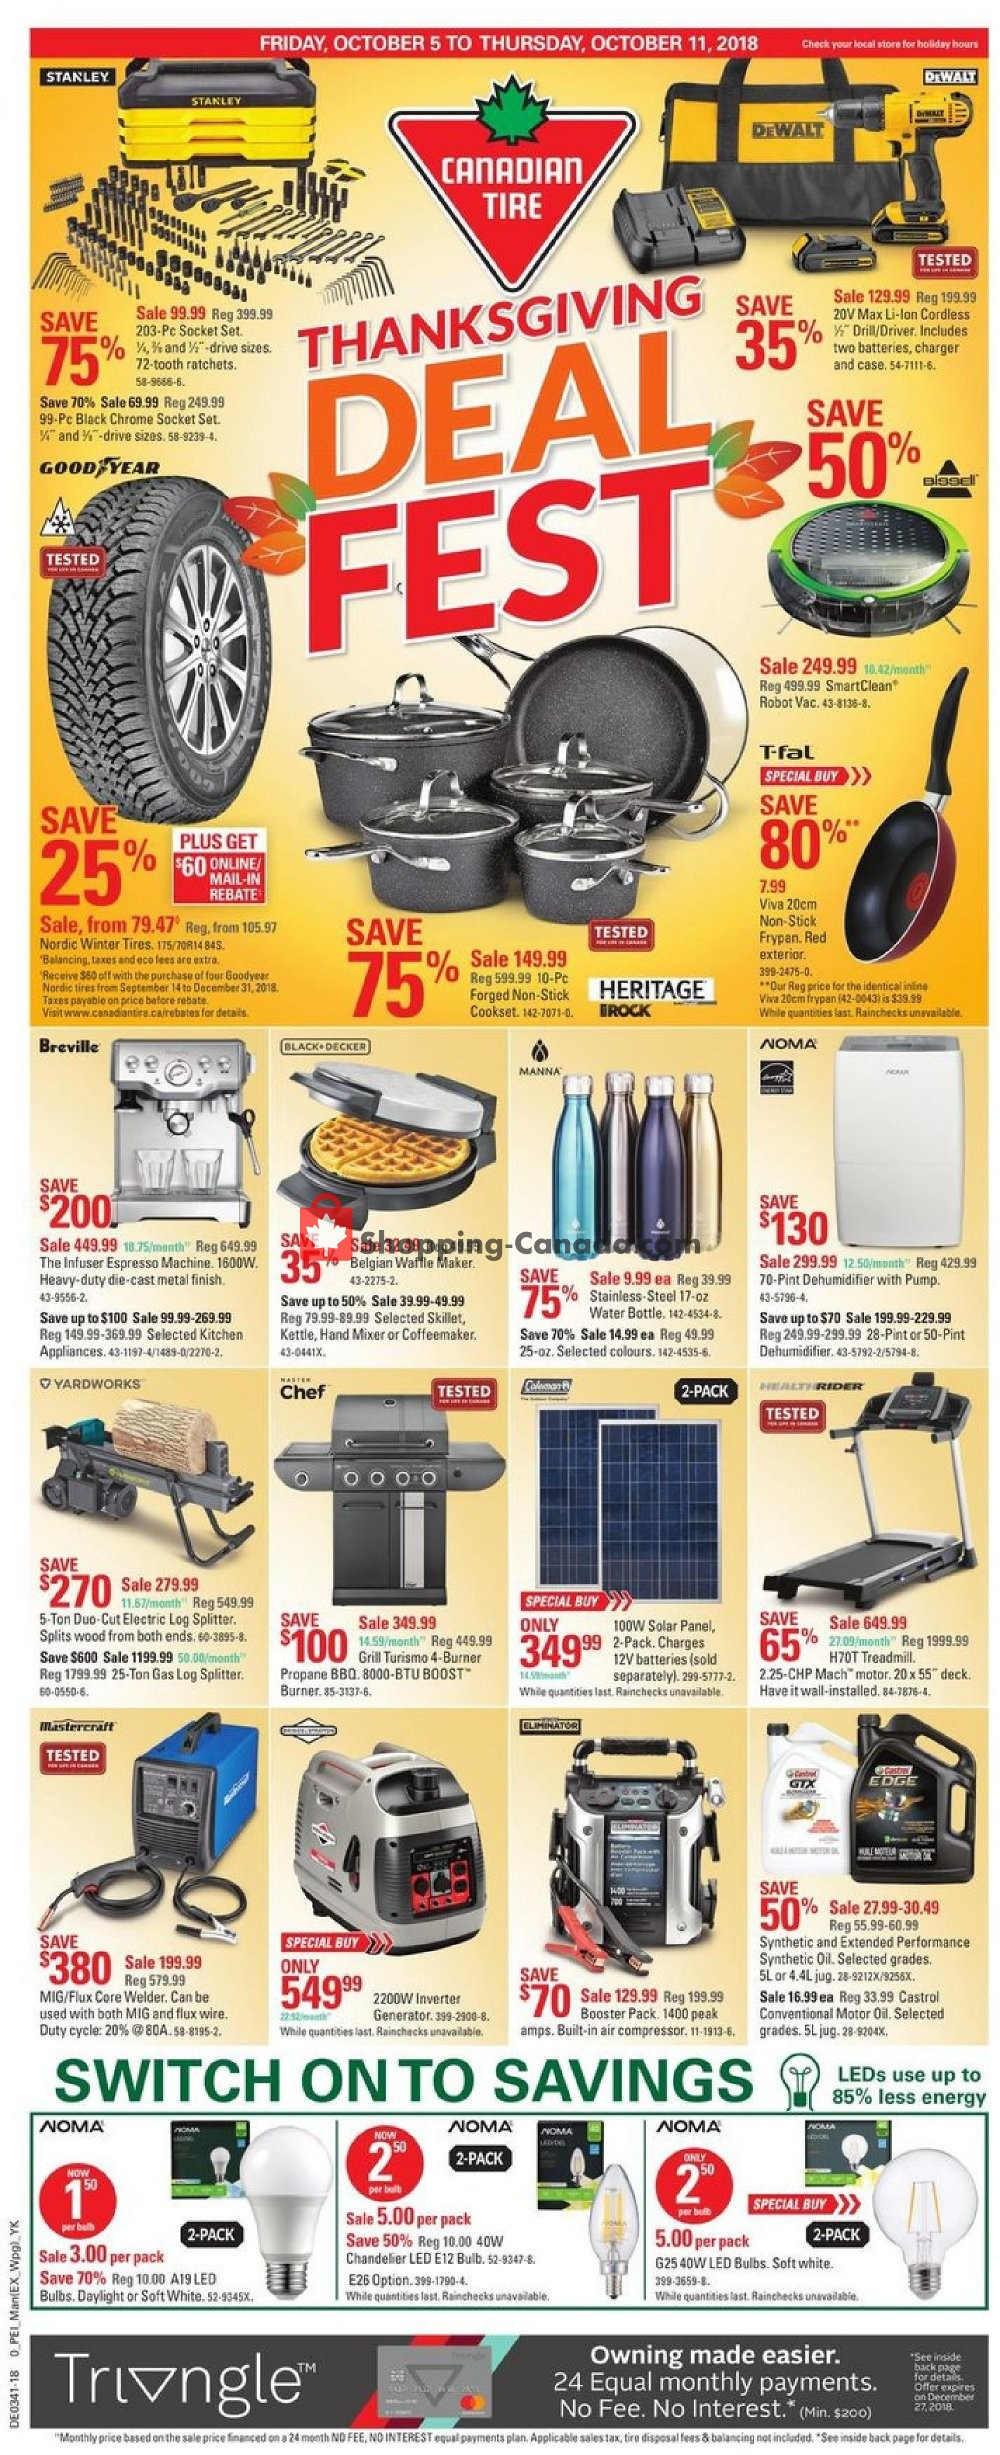 Flyer Canadian Tire Canada - from Friday October 5, 2018 to Thursday October 11, 2018